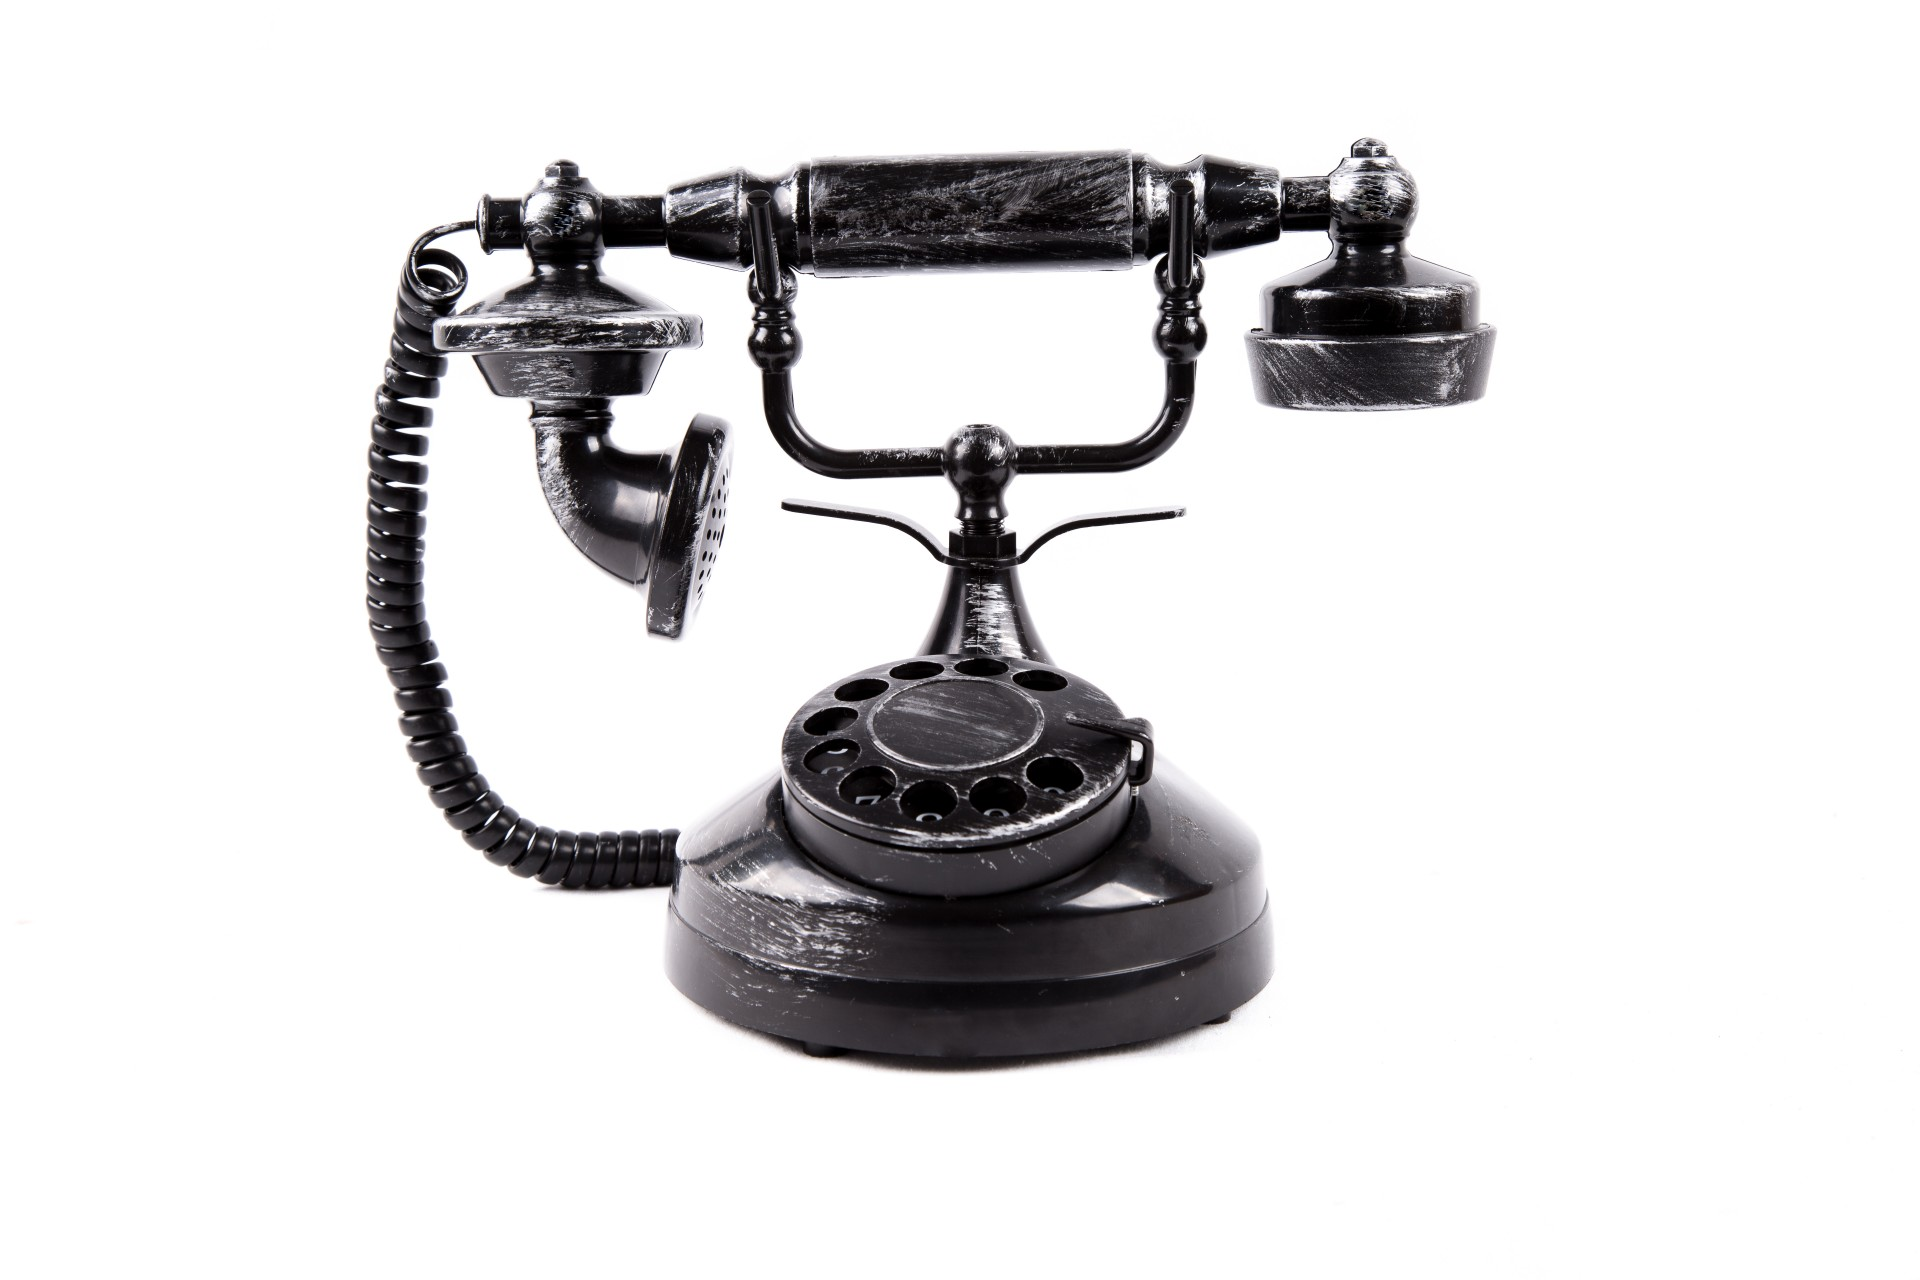 Old Phone Free Stock Photo - Public Domain Pictures